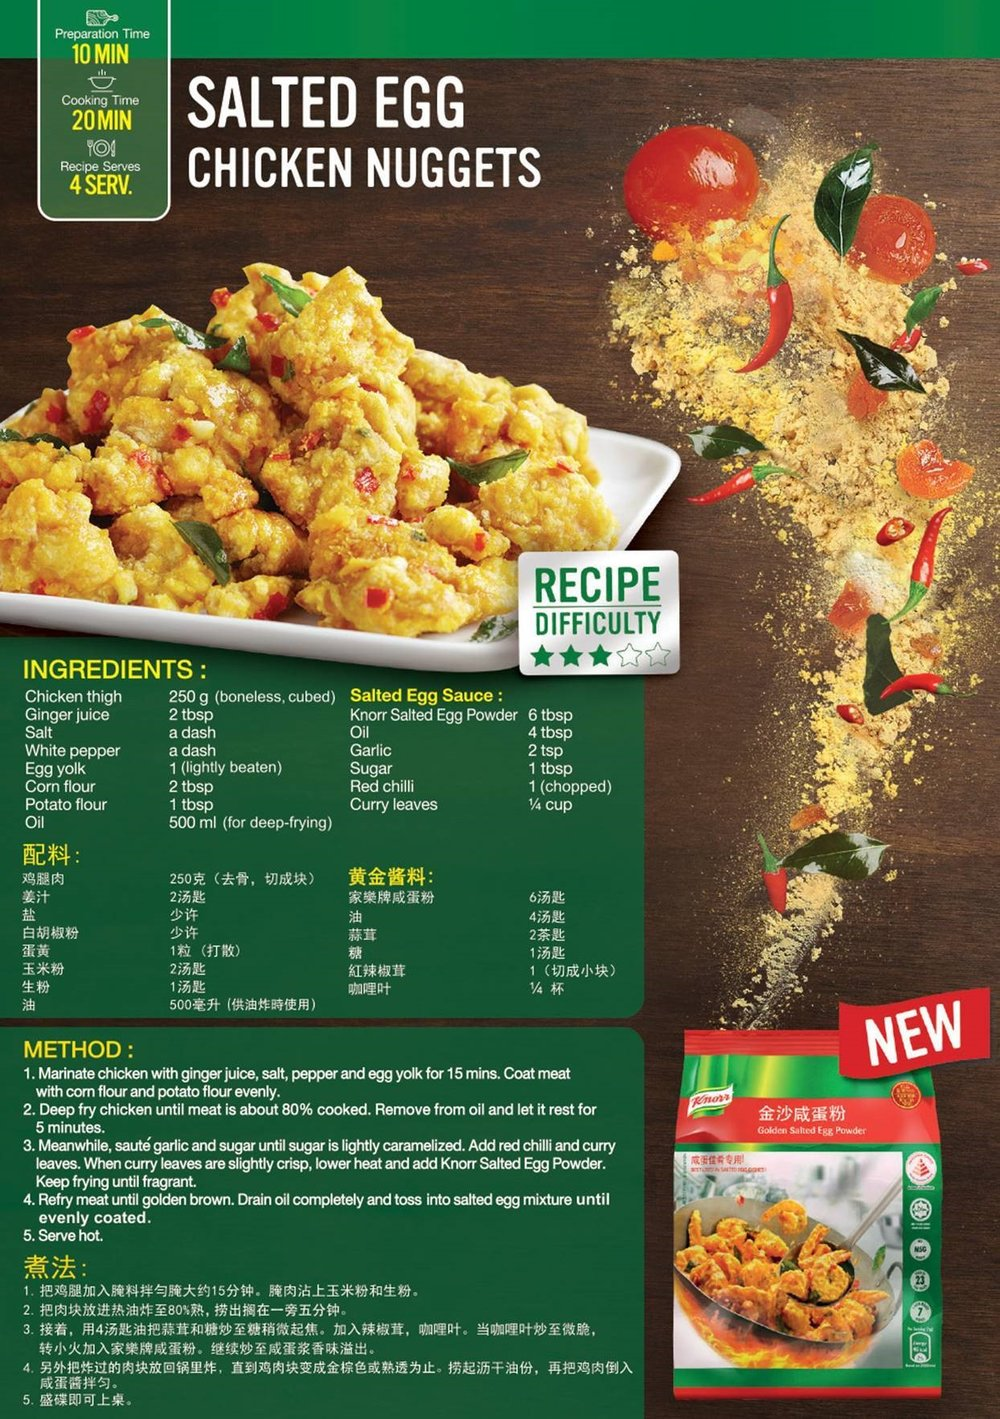 Knorr Salted Egg Recipe - Chicken Nuggets.jpg